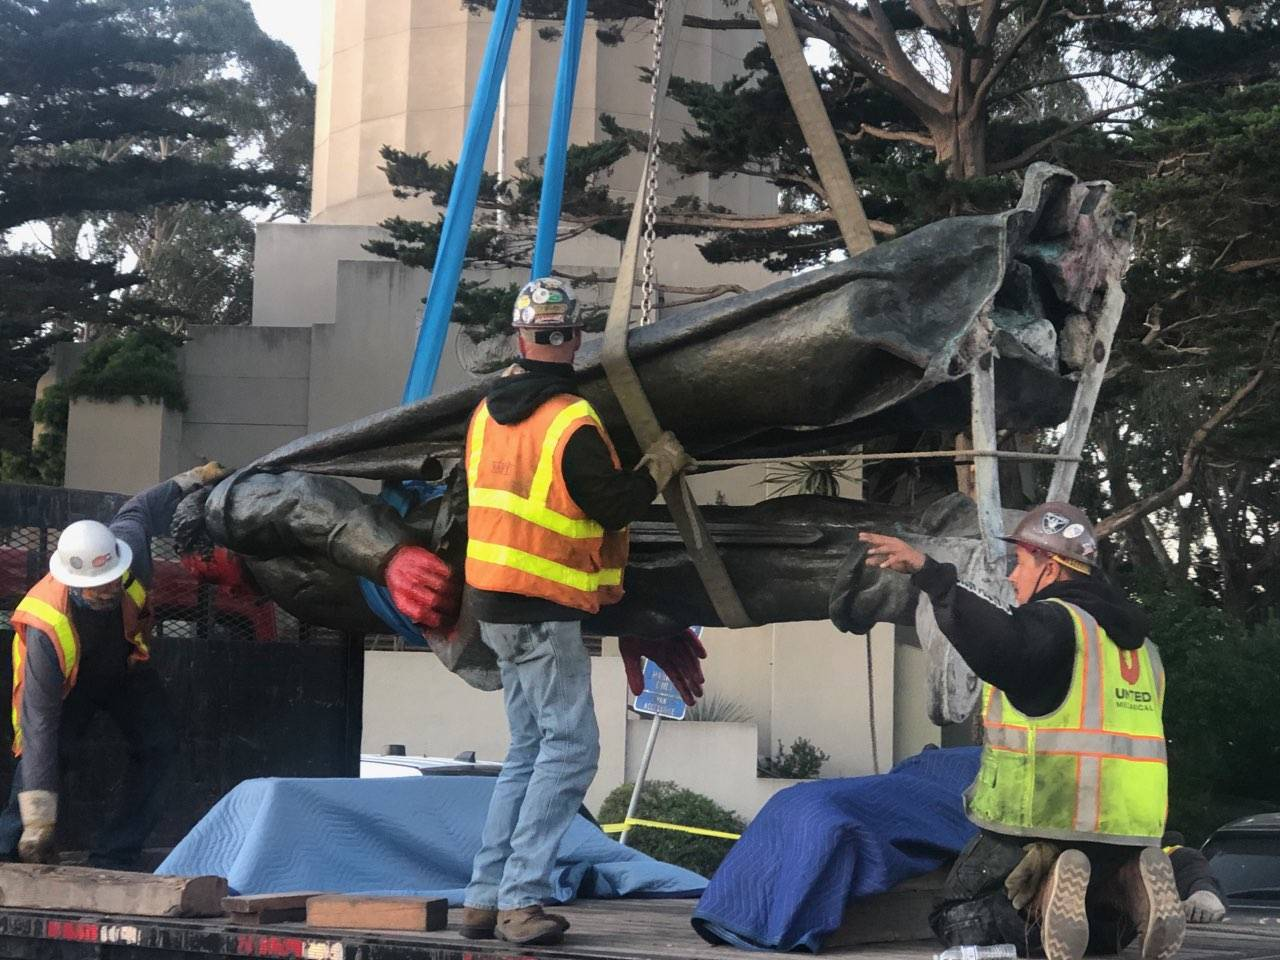 City work crews removed a statue of Christopher Columbus from its site near Coit Tower early Thursday June 18, 2020 after learning that a protest was planned targeting the statue. (Courtesy photo)